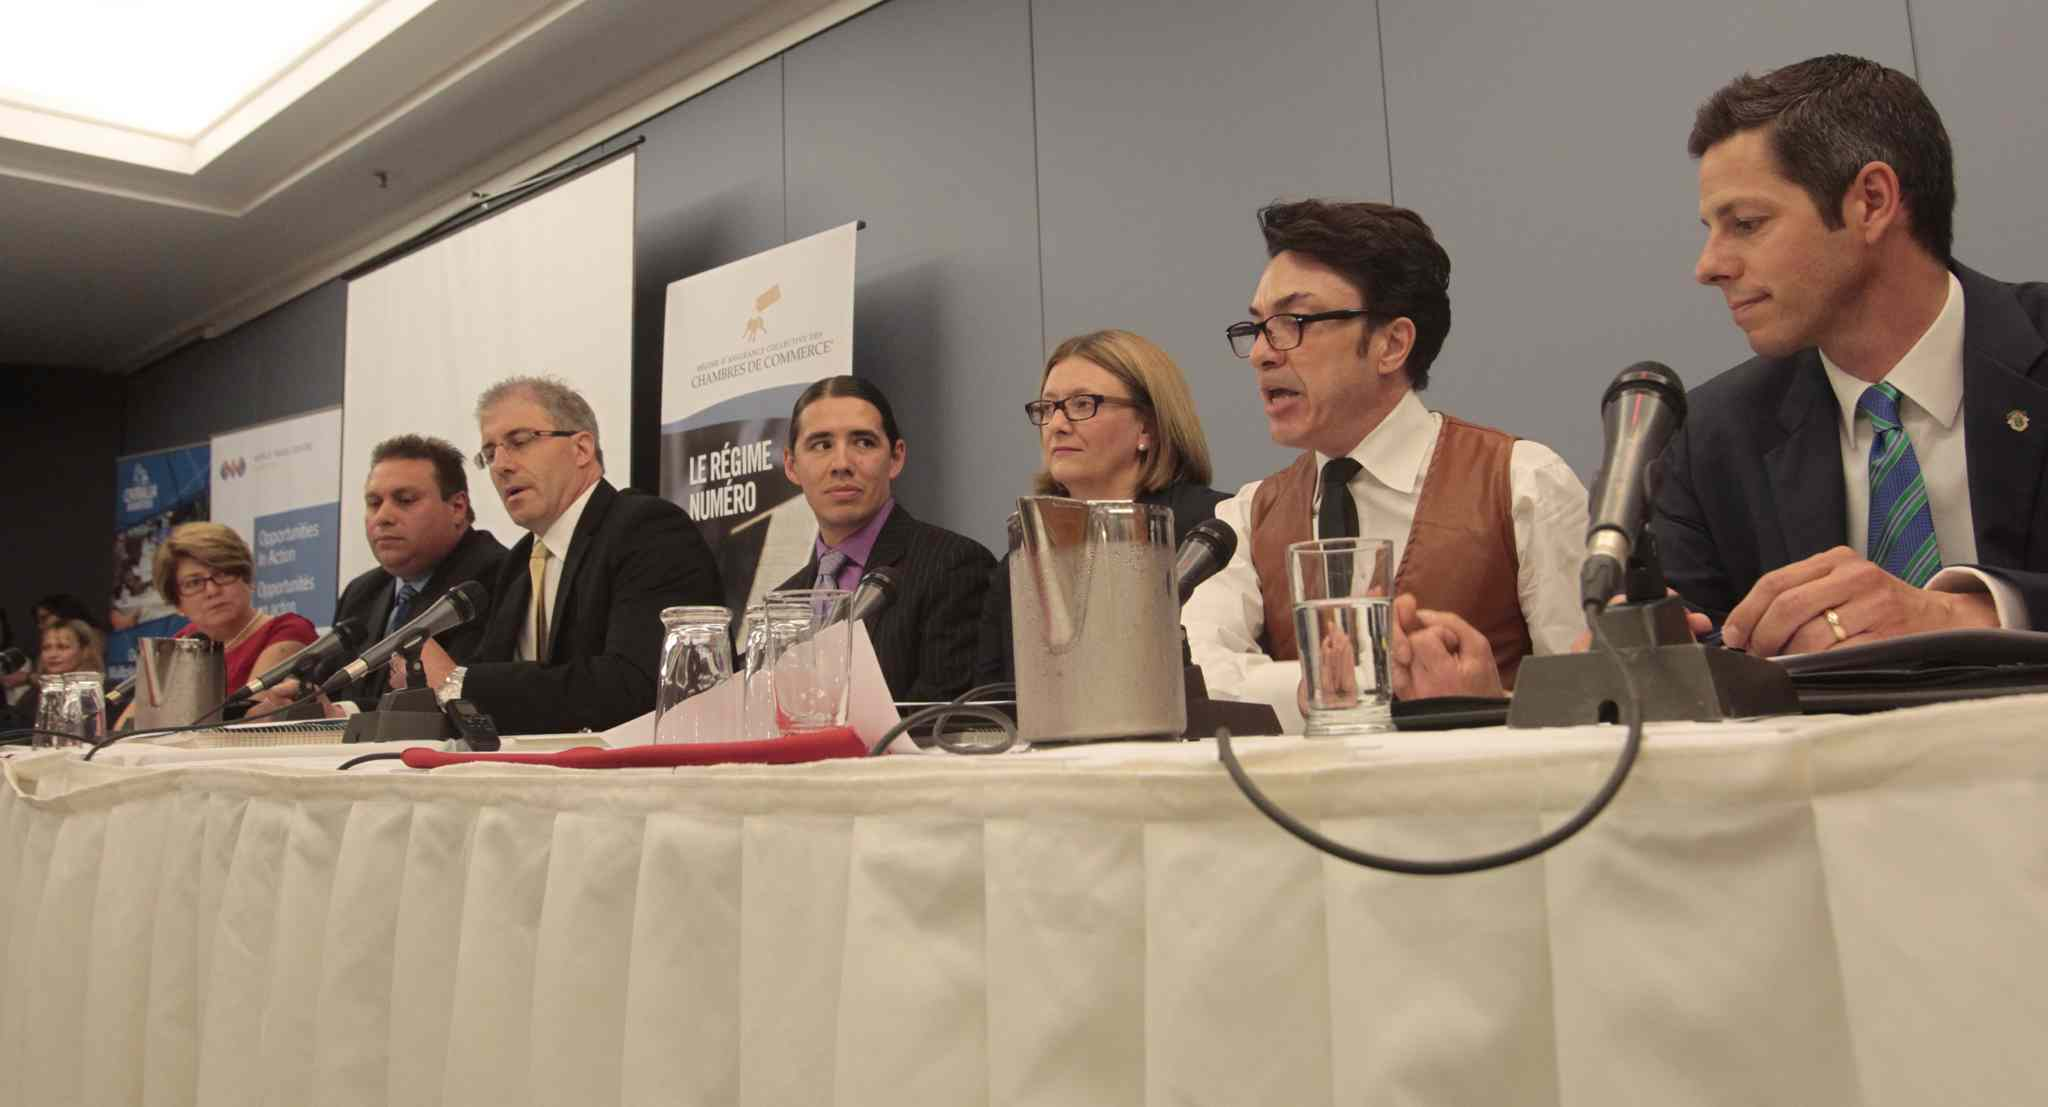 From right, mayoral candidates Brian Bowman, Michel Fillion, Paula Havixbeck, Robert-Falcon Ouellette, Gord Steeves, Michael Vogiatzakis and Judy Wasylycia-Leis at the luncheon Wednesday.